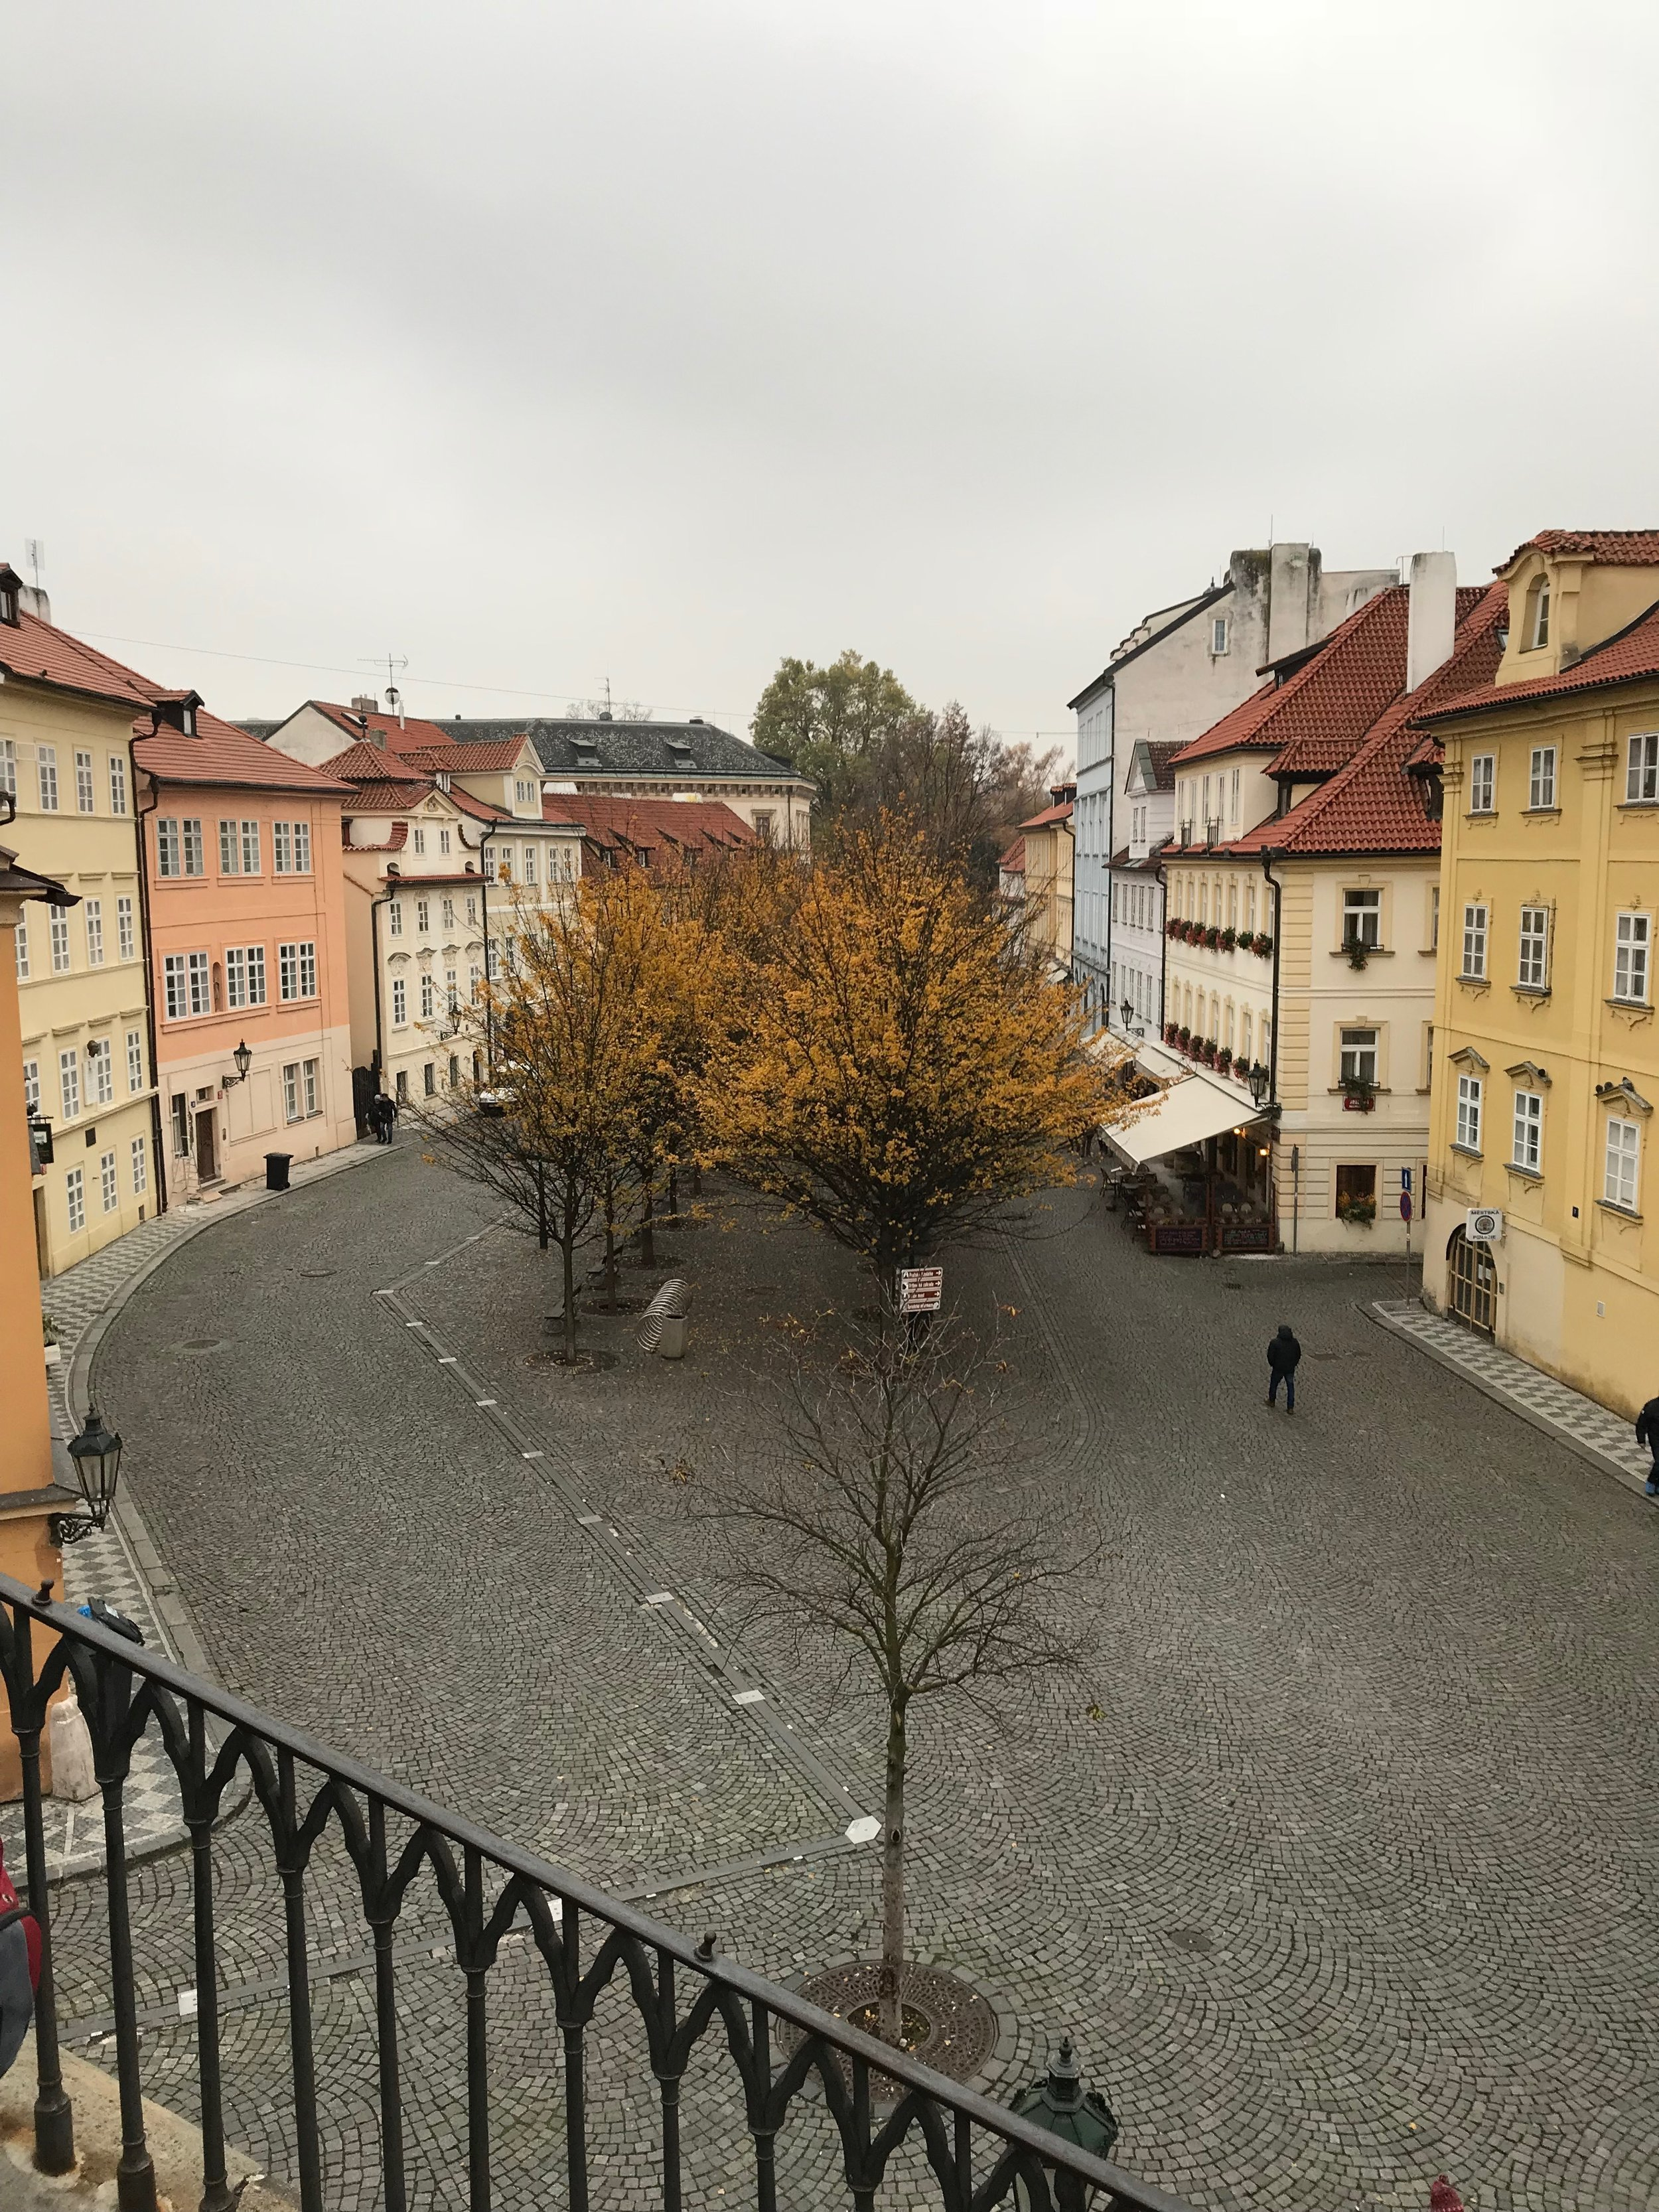 If autumn in Prague is this lovely, i cannot imagine the spring